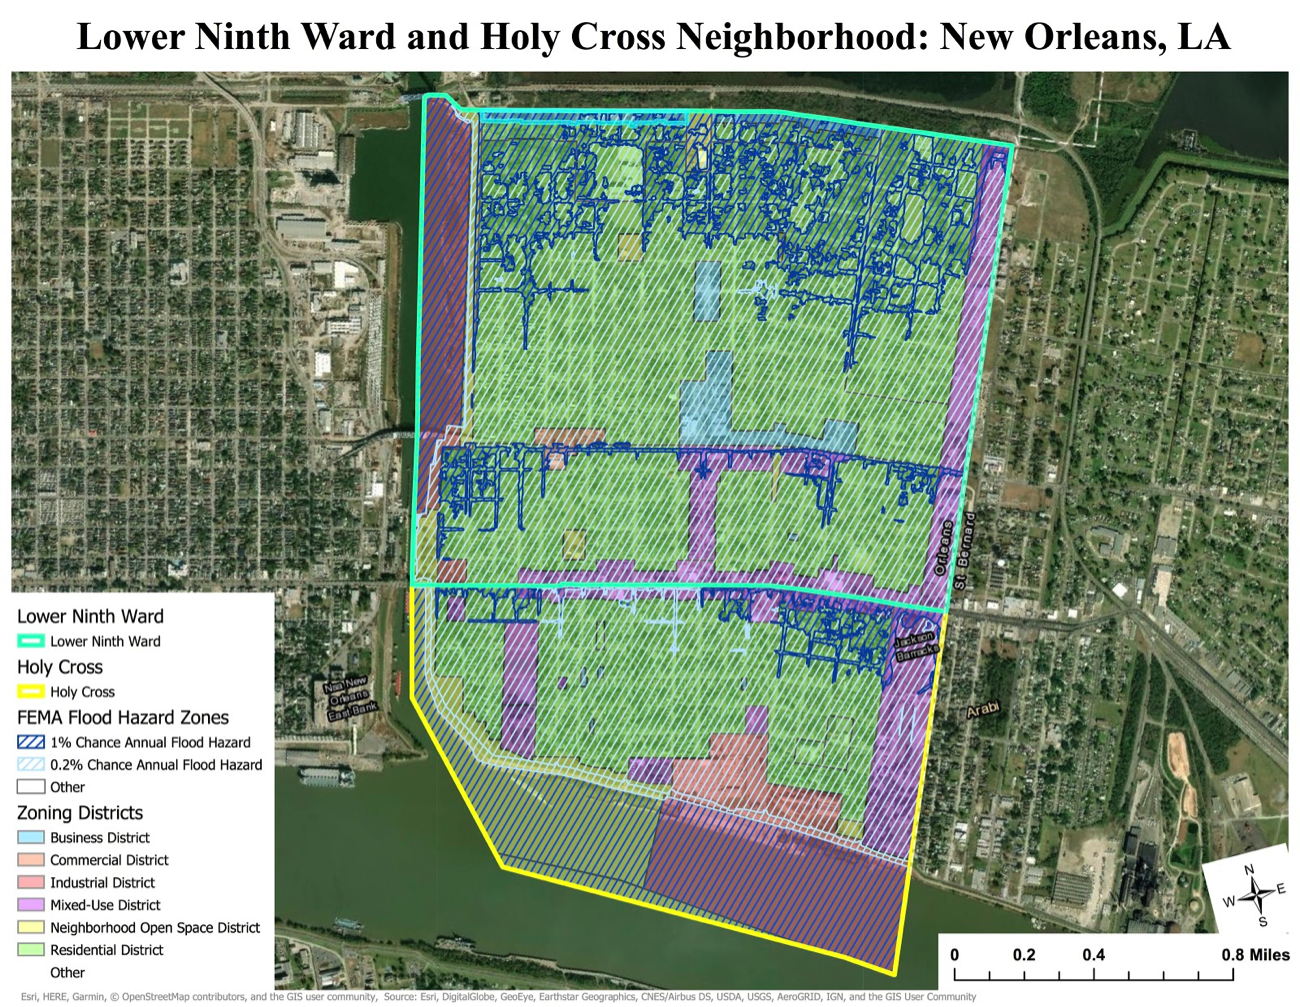 Esri ArcGIS Pro, City of New Orleans, FEMA, USGS, Scale: 1:21,500